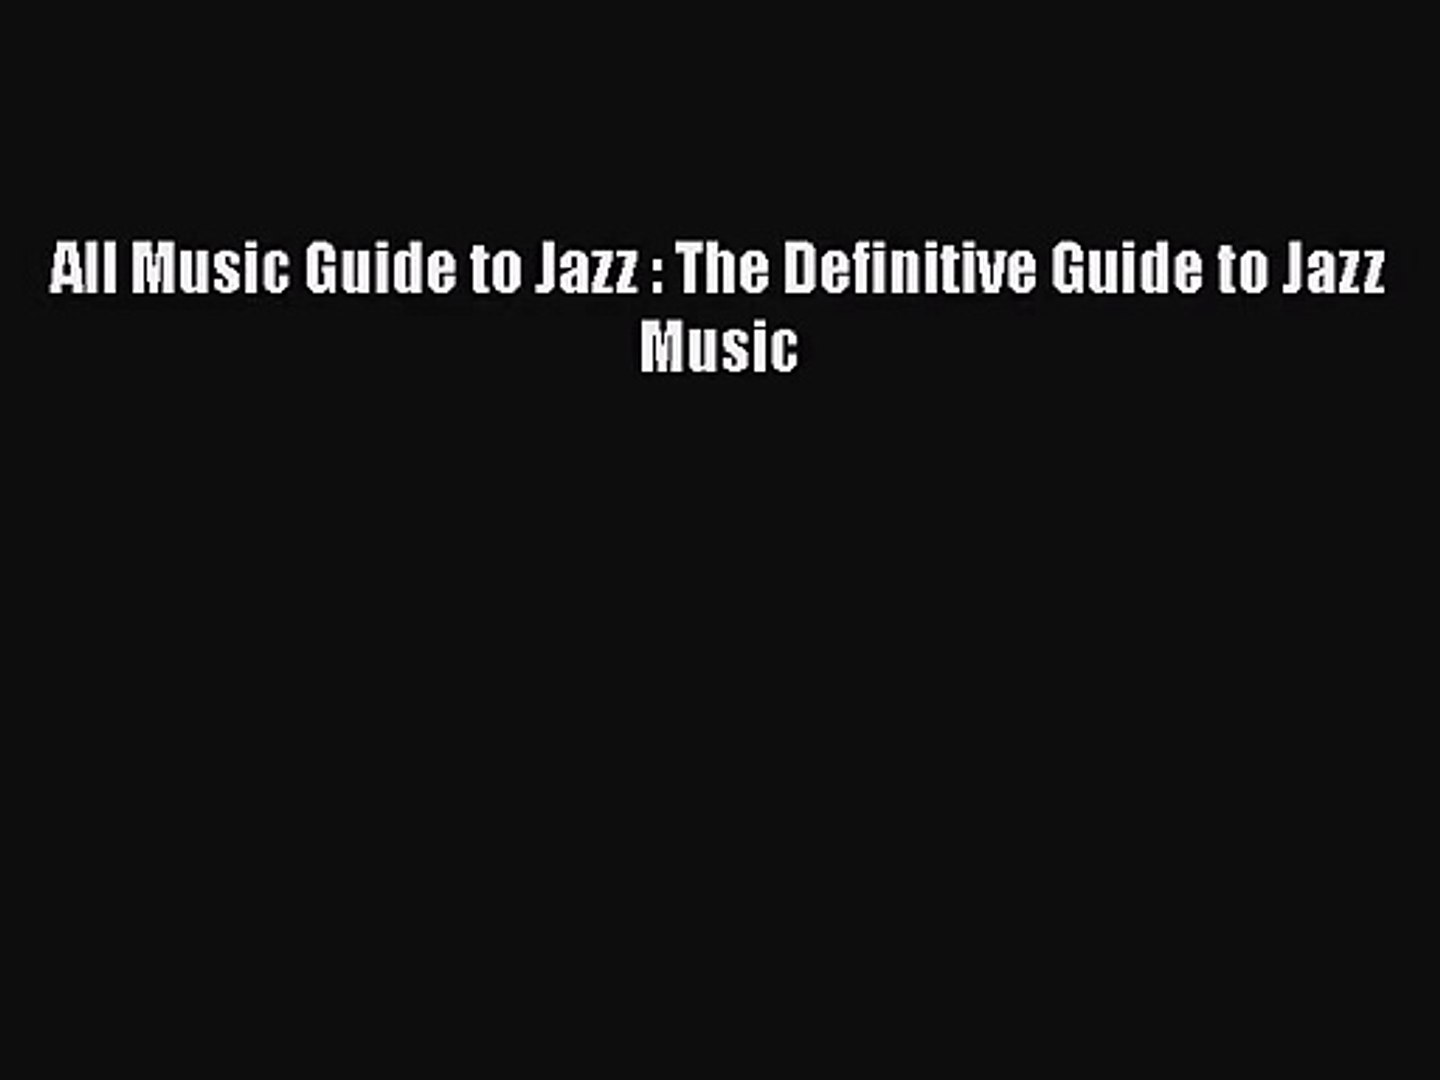 PDF Download All Music Guide to Jazz : The Definitive Guide to Jazz Music Download Online